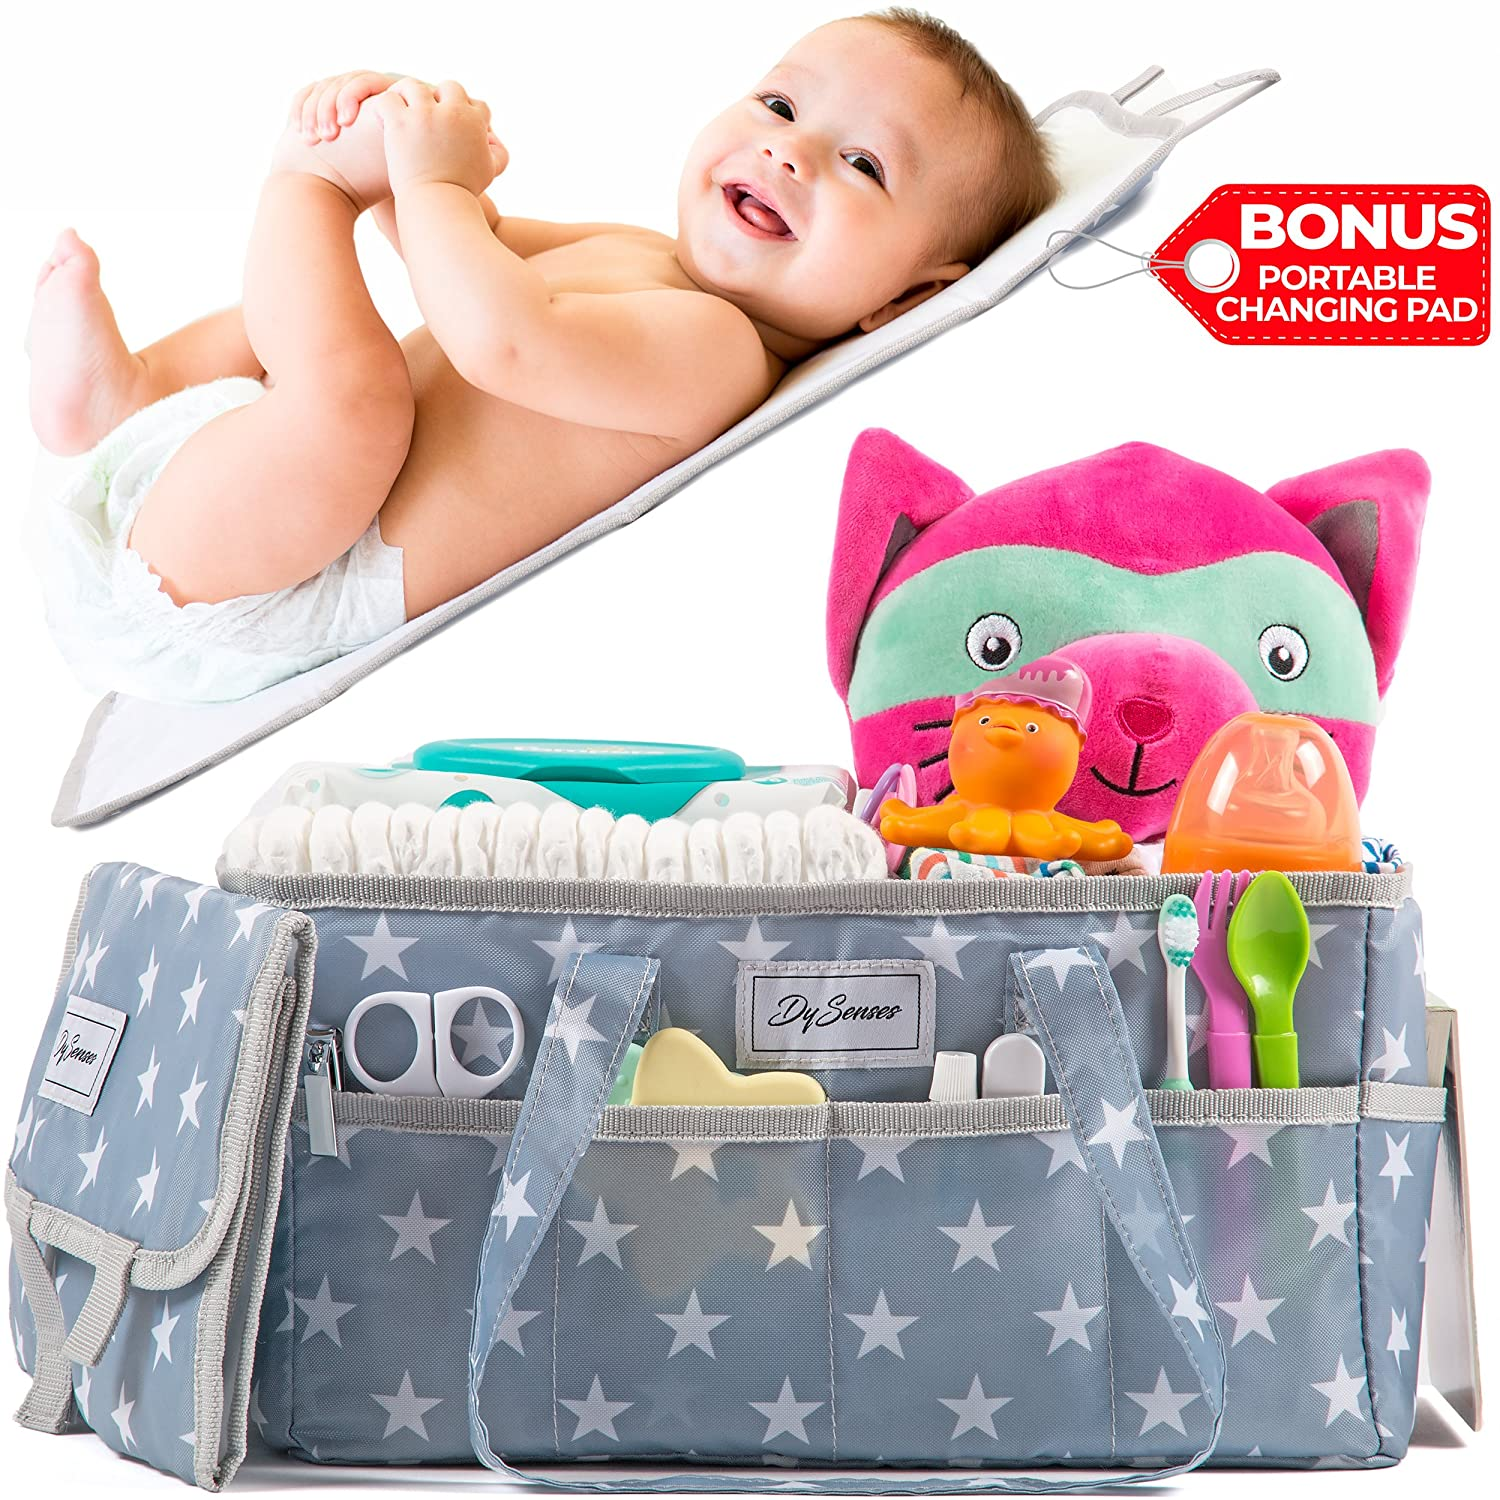 Diaper Storage Caddy Nursery Organizer | Grey Baby Diaper Caddy & Portable Changing Pad | Suitable for Car Travel Picnic & Nursing Station DySenses